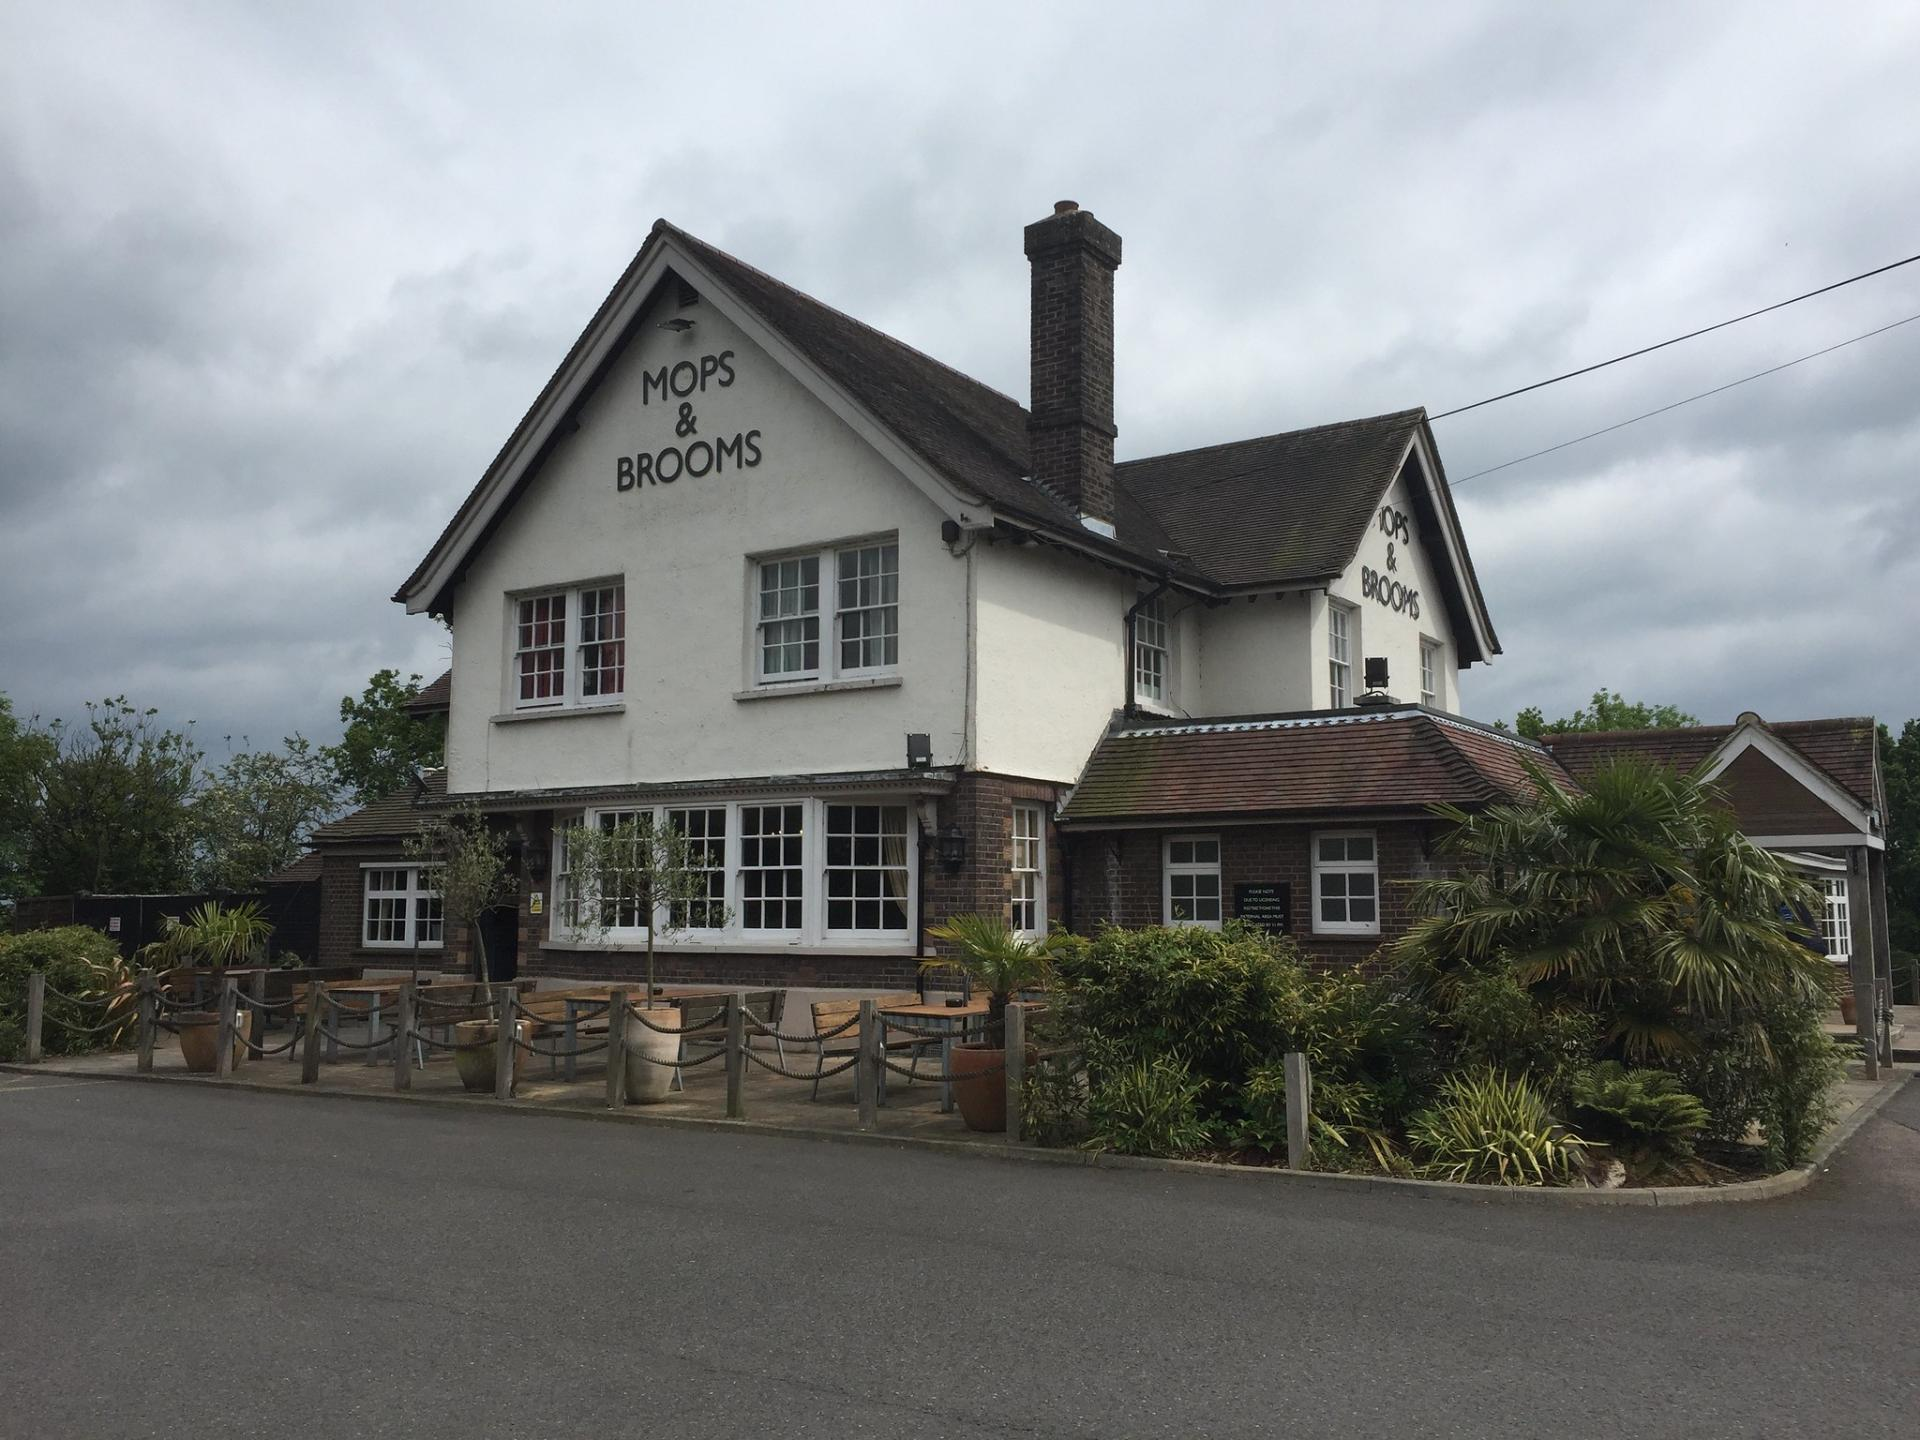 mops_and_brooms_pub_in_borehamwood_hd